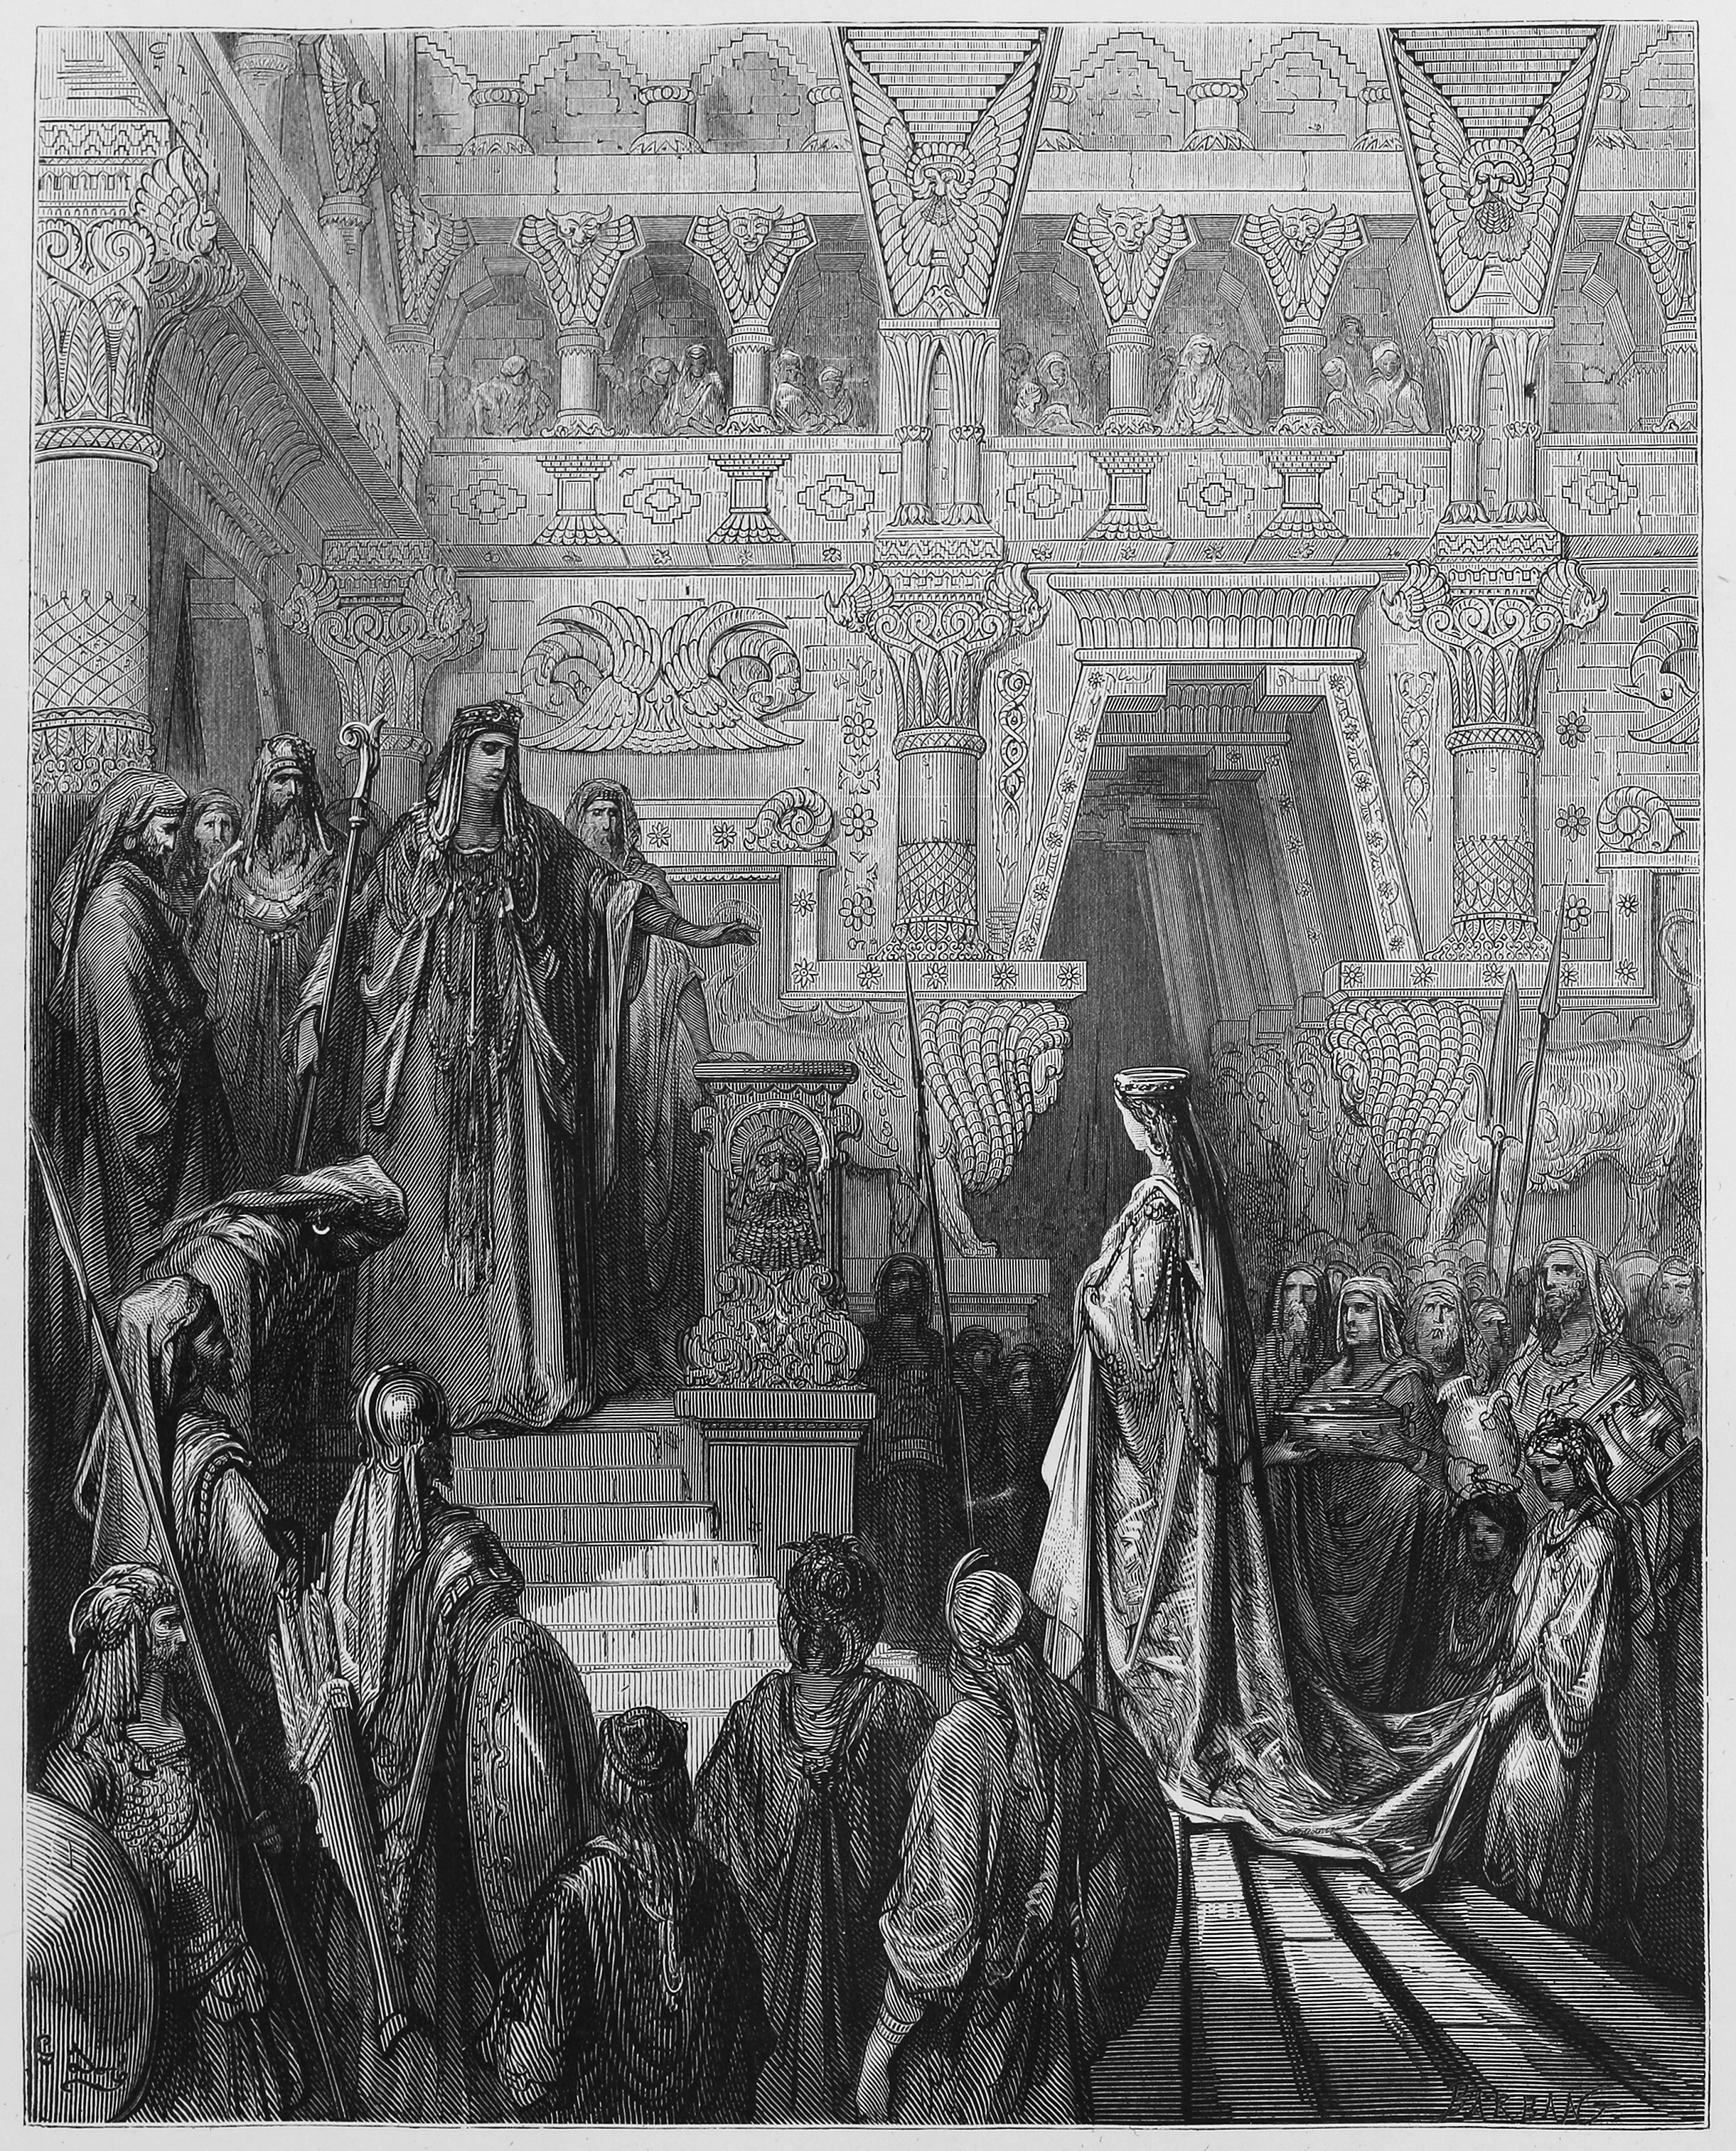 King Solomon received in the palace. Picture from The Holy Scriptures, Old and New Testaments books collection published in 1885, Stuttgart-Germany.  Photo: Shutterstock.